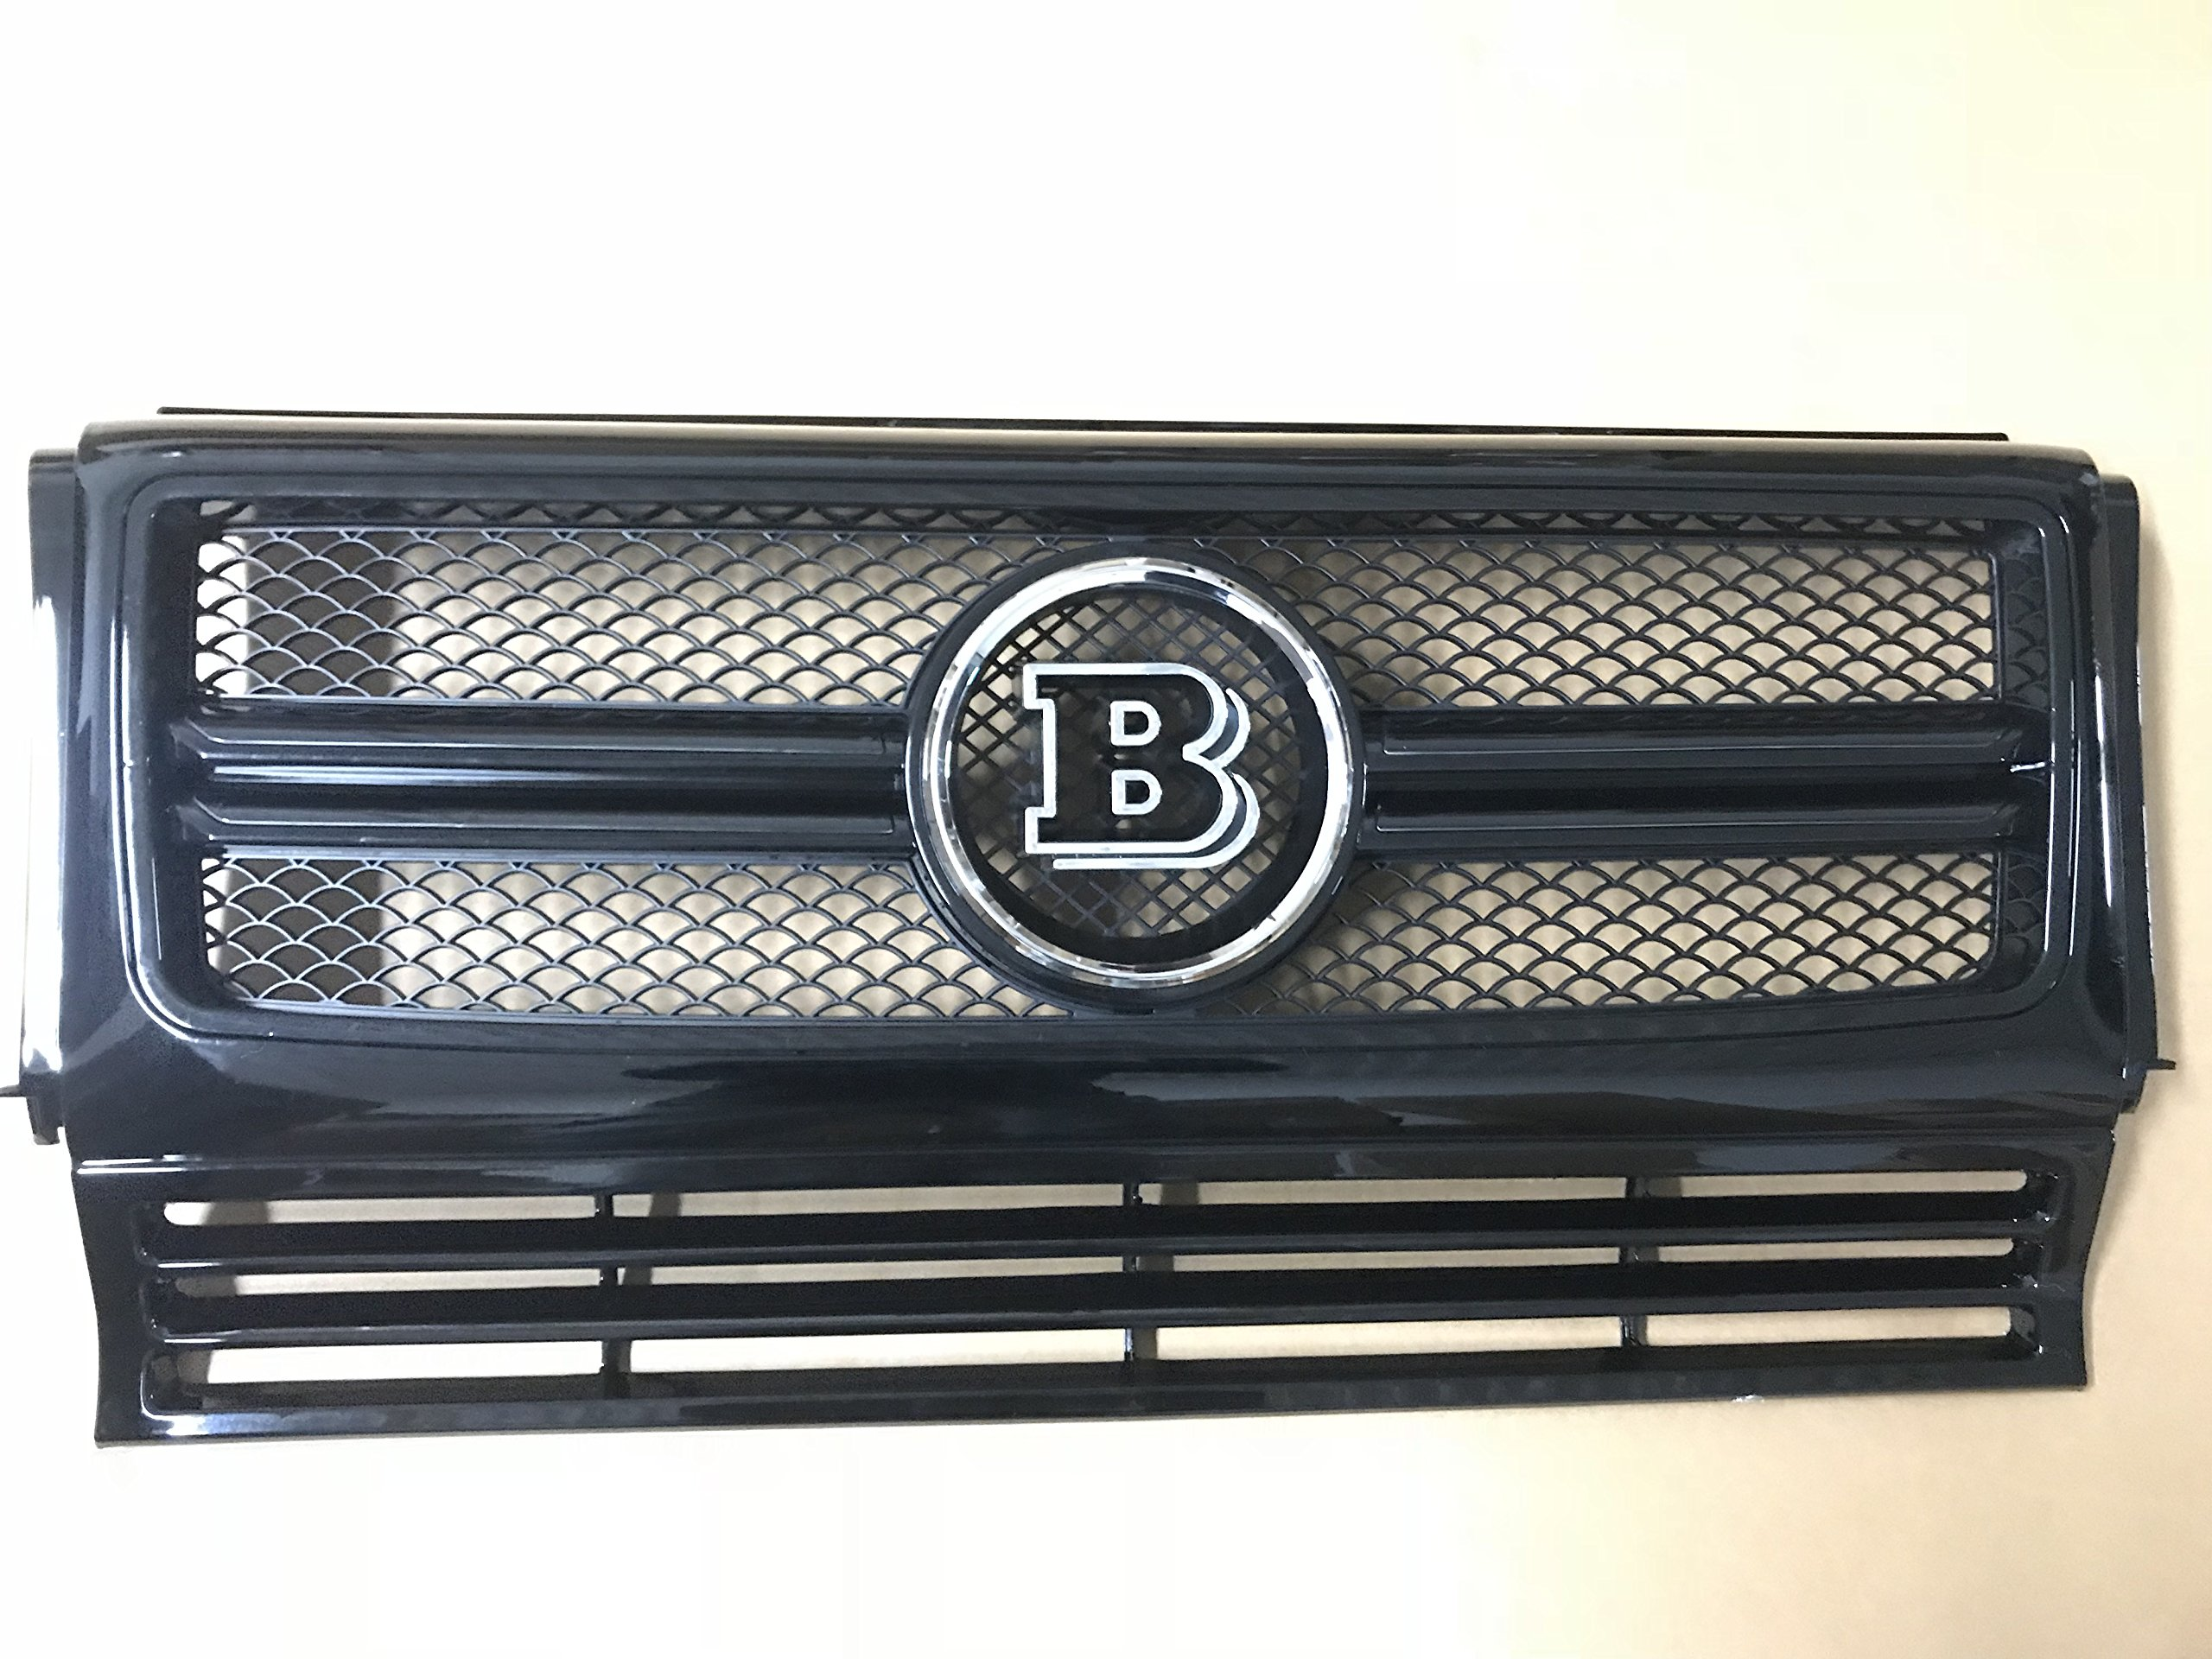 ALL BLACK G-Wagon W463 BRABUS-Style G65 W463 Conversion Grille Complete Fit For Mercedes-benz G500 G550 G63 Grille (Chrome B)